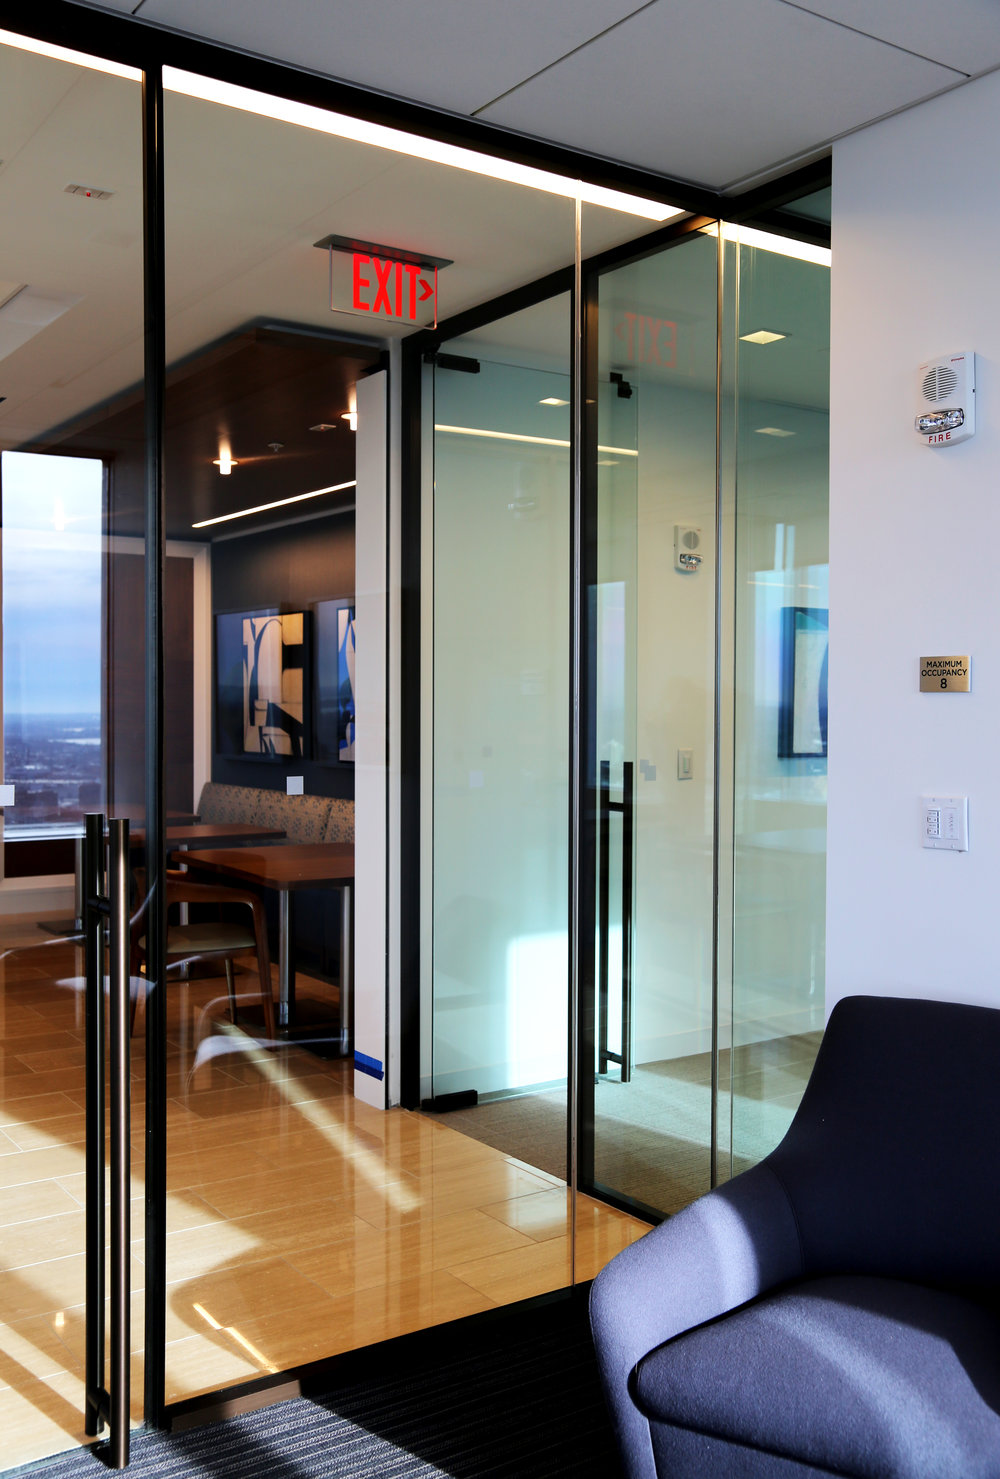 Modernus Frameless Glass Sliding Door Glass Wall Aluminum Framed - Spaceworks AI.jpg